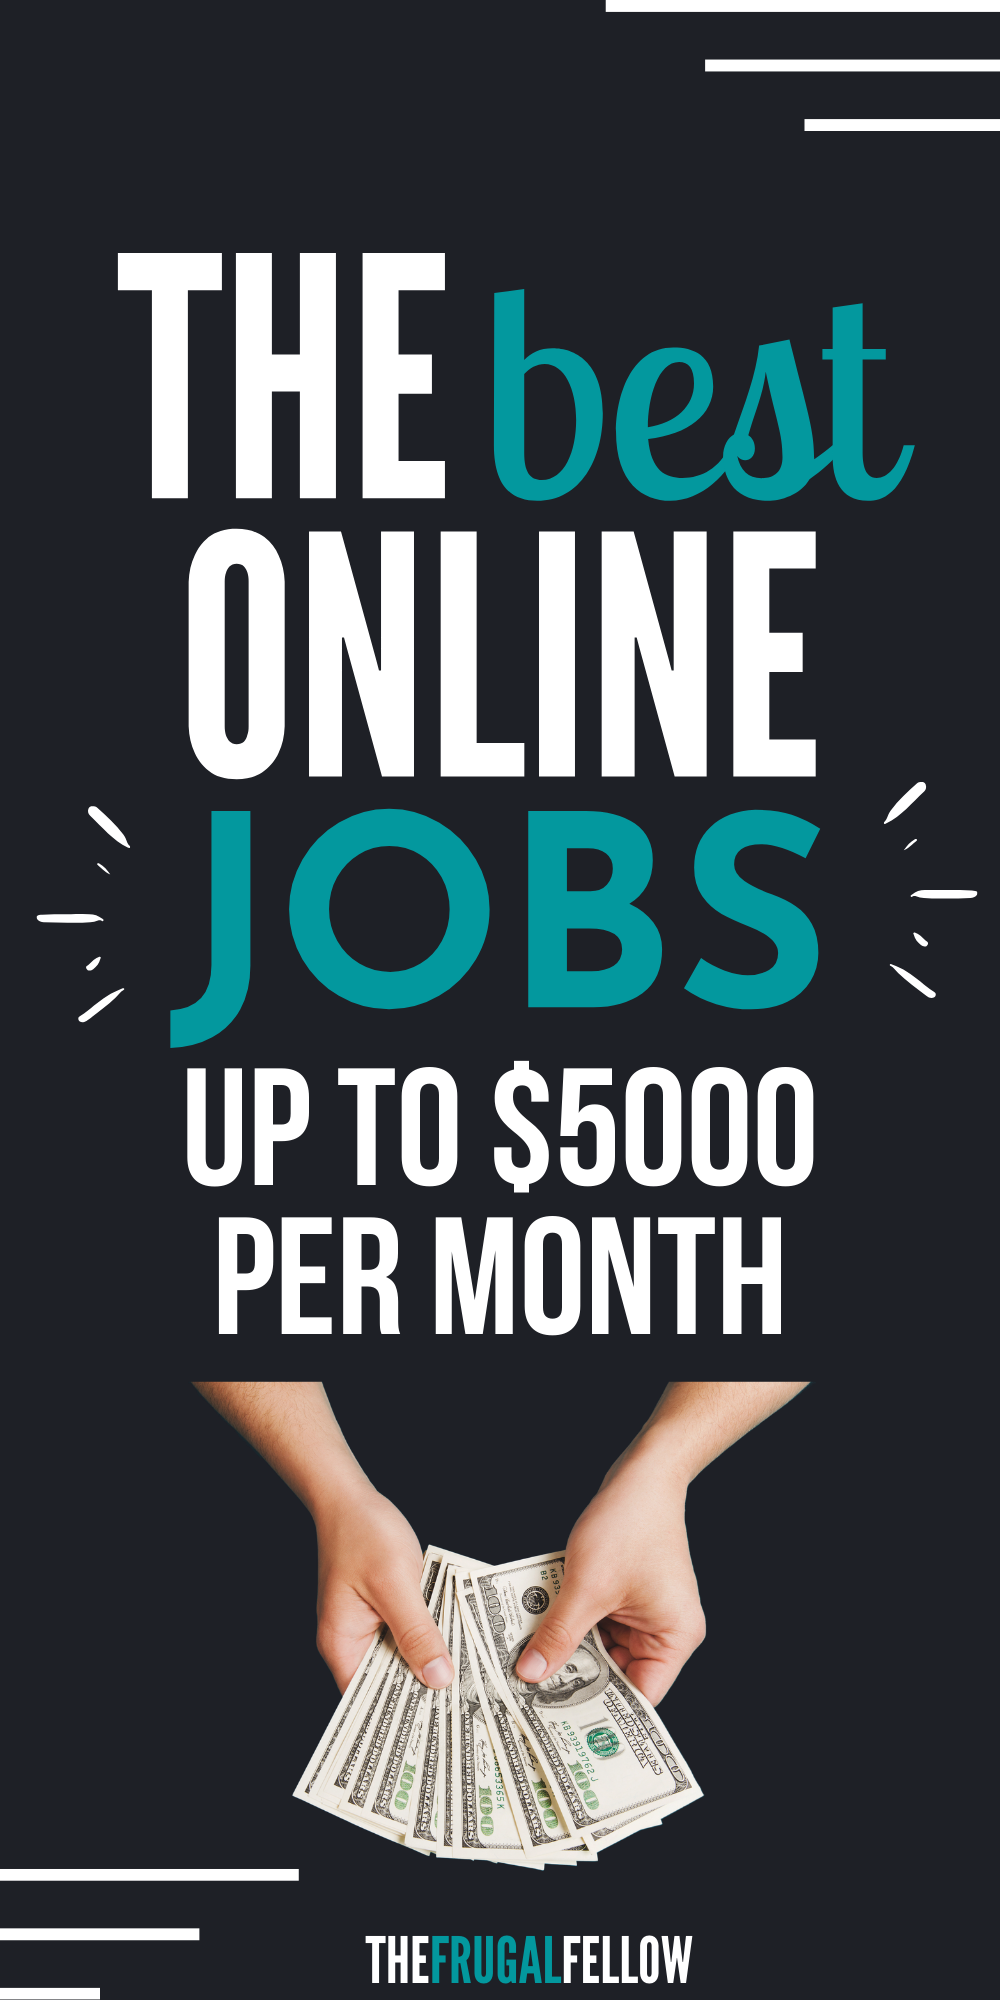 Do you want to work from home? These work from home ideas will let you make money online via side hustles and give you the work inspiration you need to increase your income.